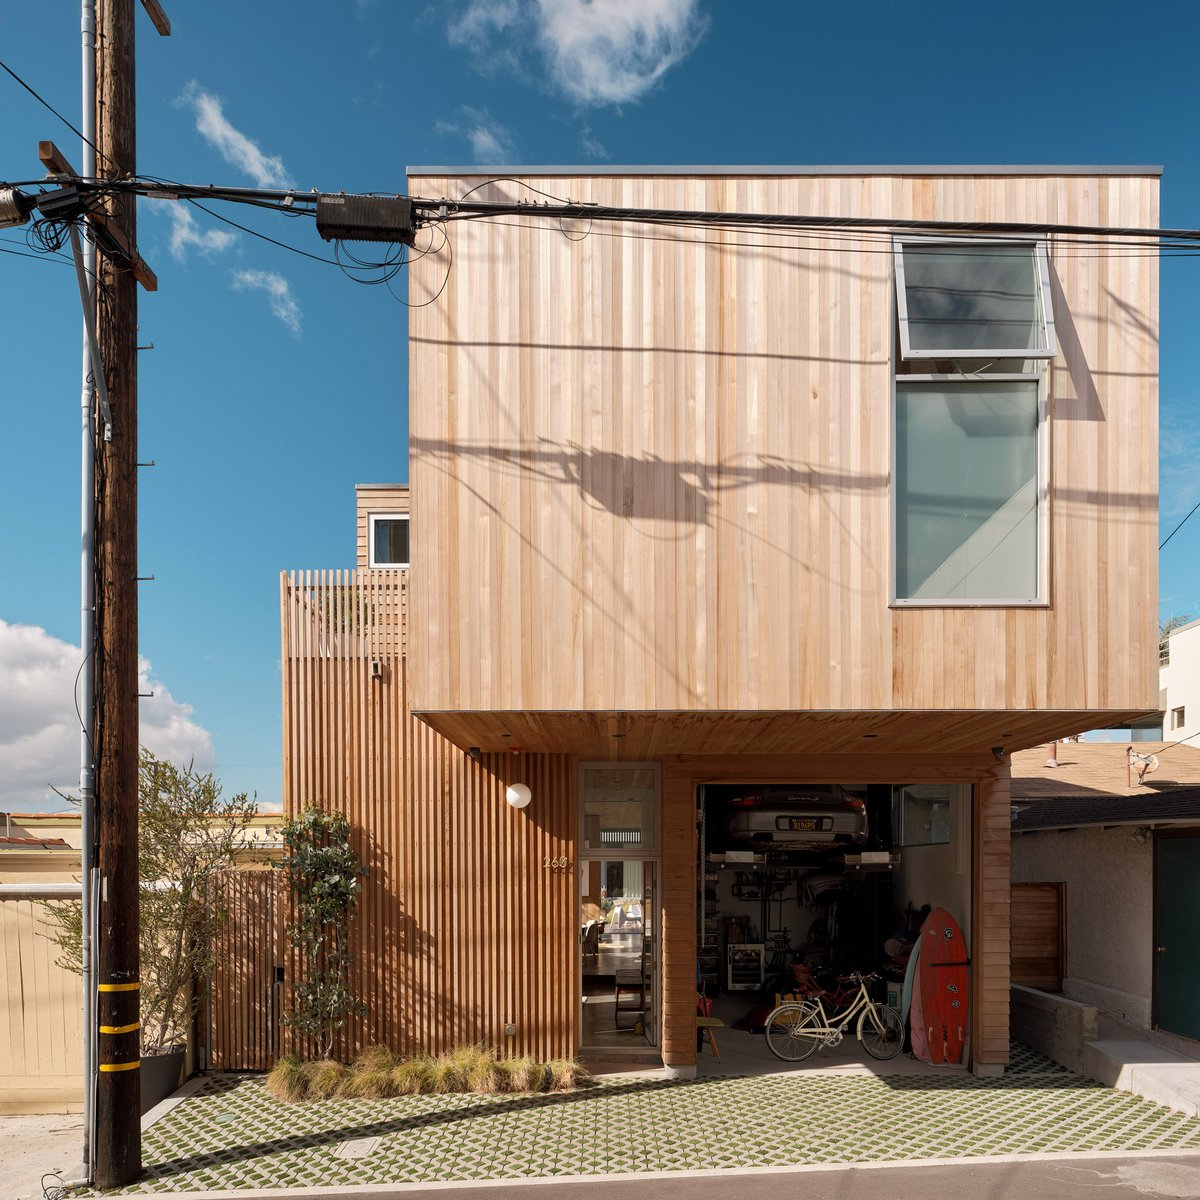 Ras-A Studio builds Walk-Street House near the beach in California _ The slats of cedar are milled in different ways to offer contrast and texture. Foto Joe Fletcher Desde @dezeen https://bit.ly/36r9wnP #Arquitectura #madera #MaderayConstrucción @Maderayconstrucpic.twitter.com/gK0CGt8FMI